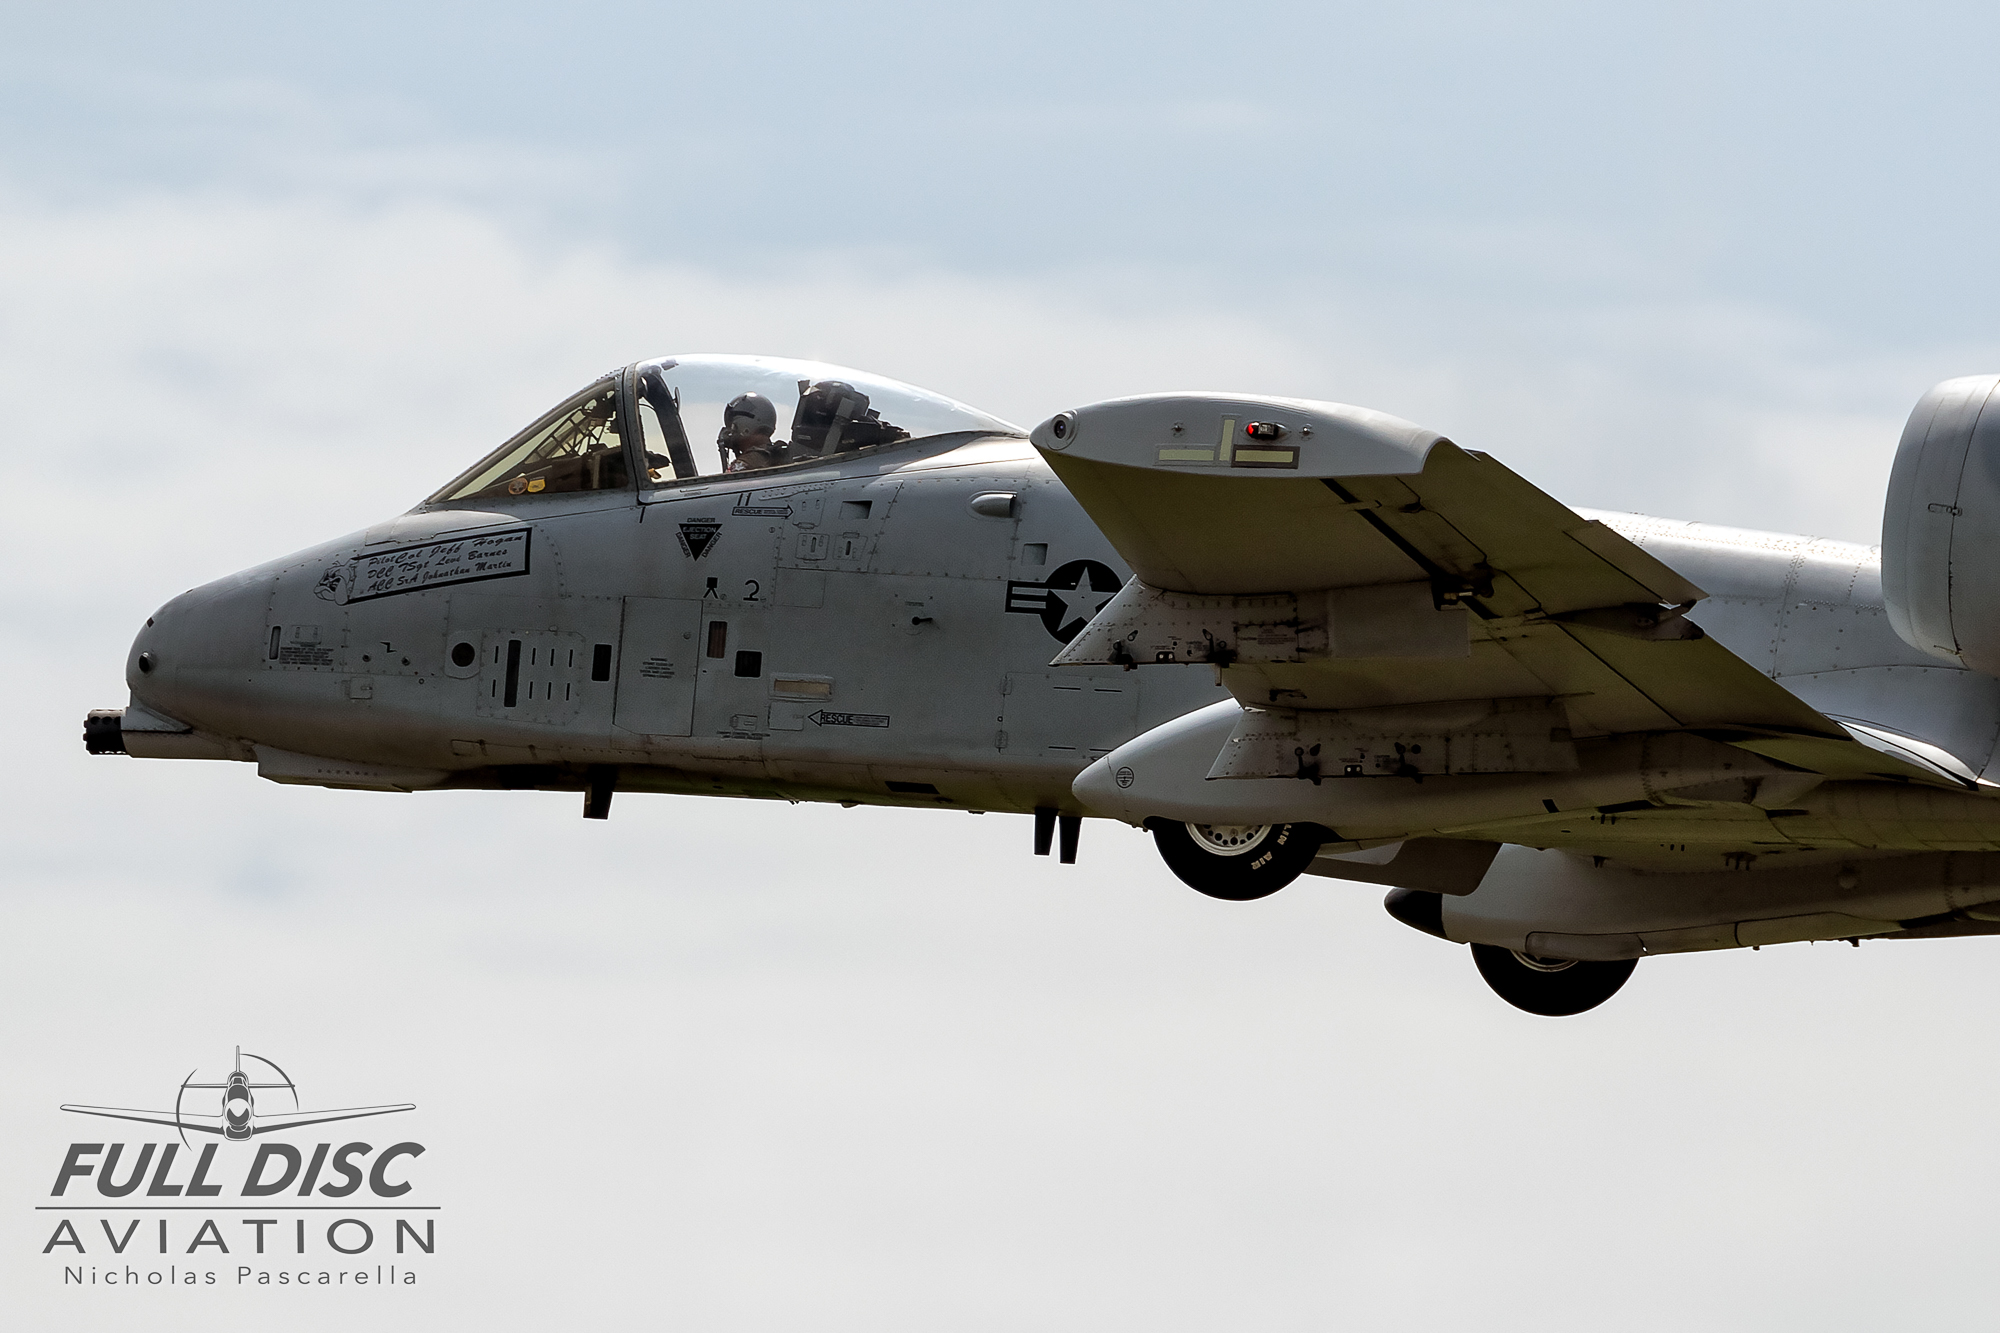 10_closeup_a10demoteam__aviation__nickpascarella_nicholaspascarella_fulldiscaviation_leasewebmanassasairshow.jpg